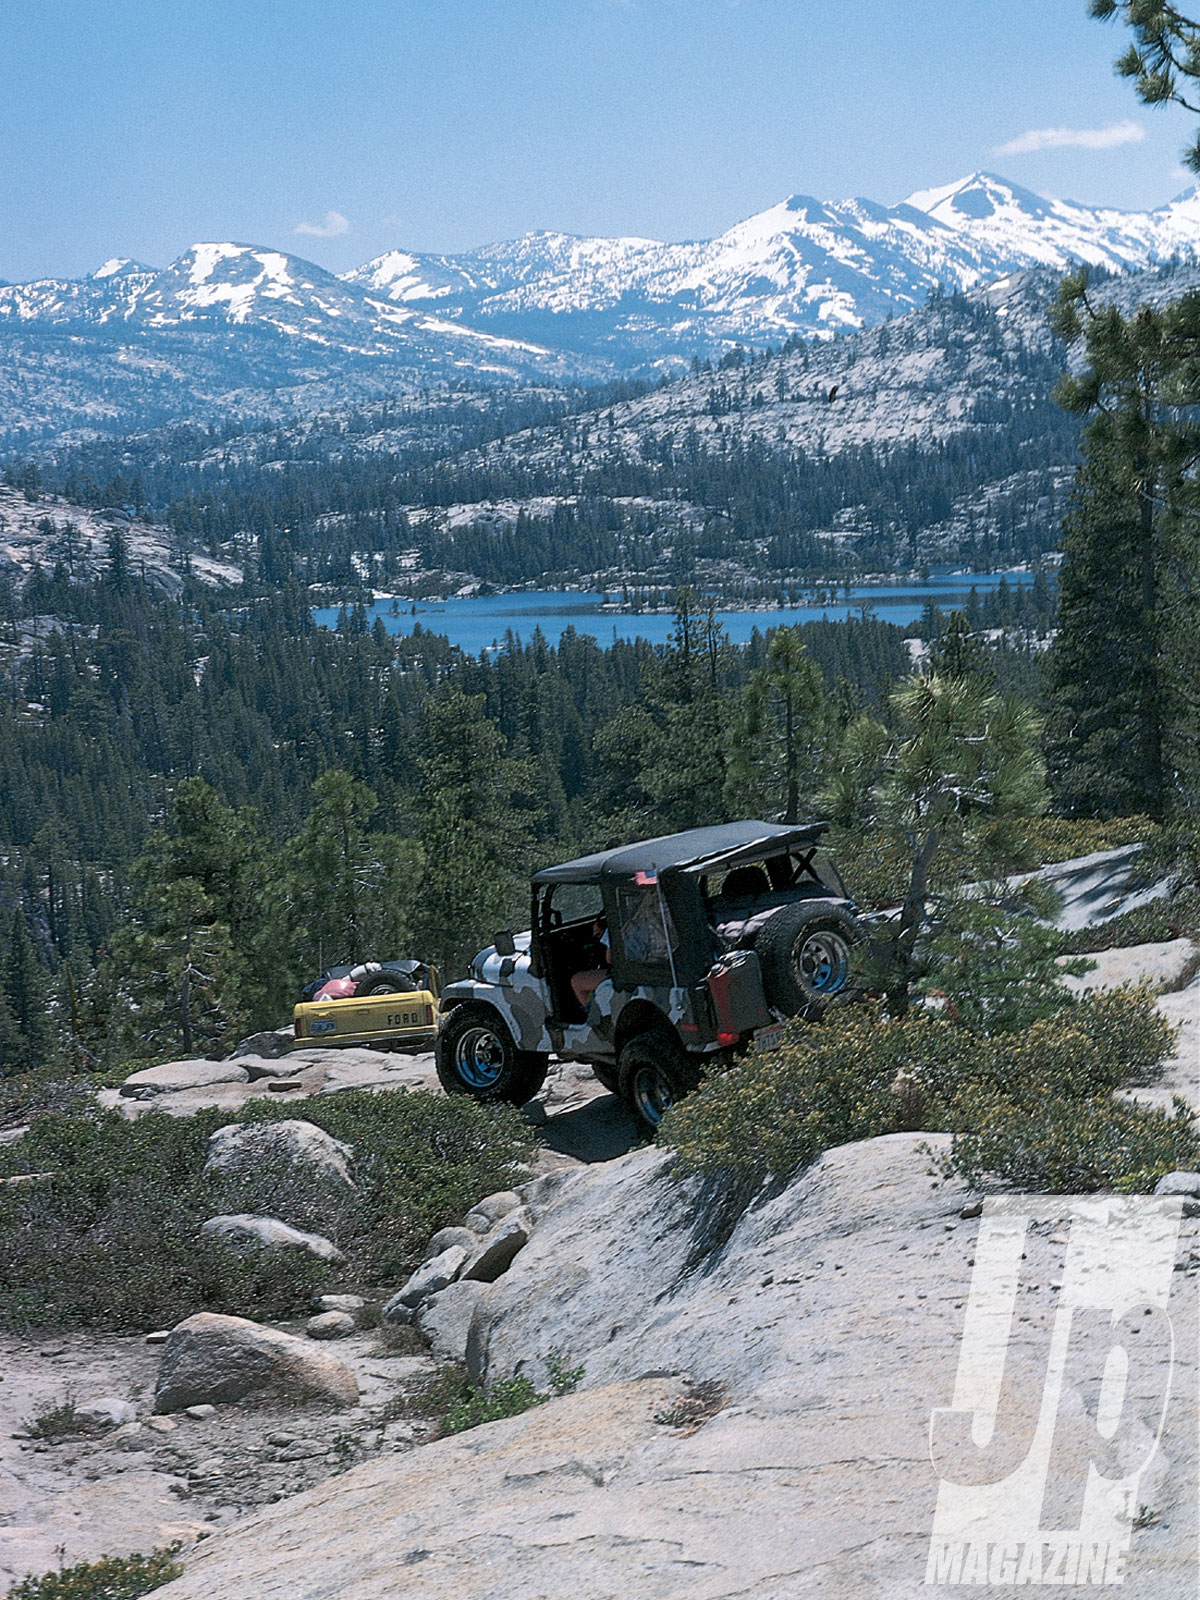 154 9901 01 o+154 9901 rubicon jeep fest+trail and lake view